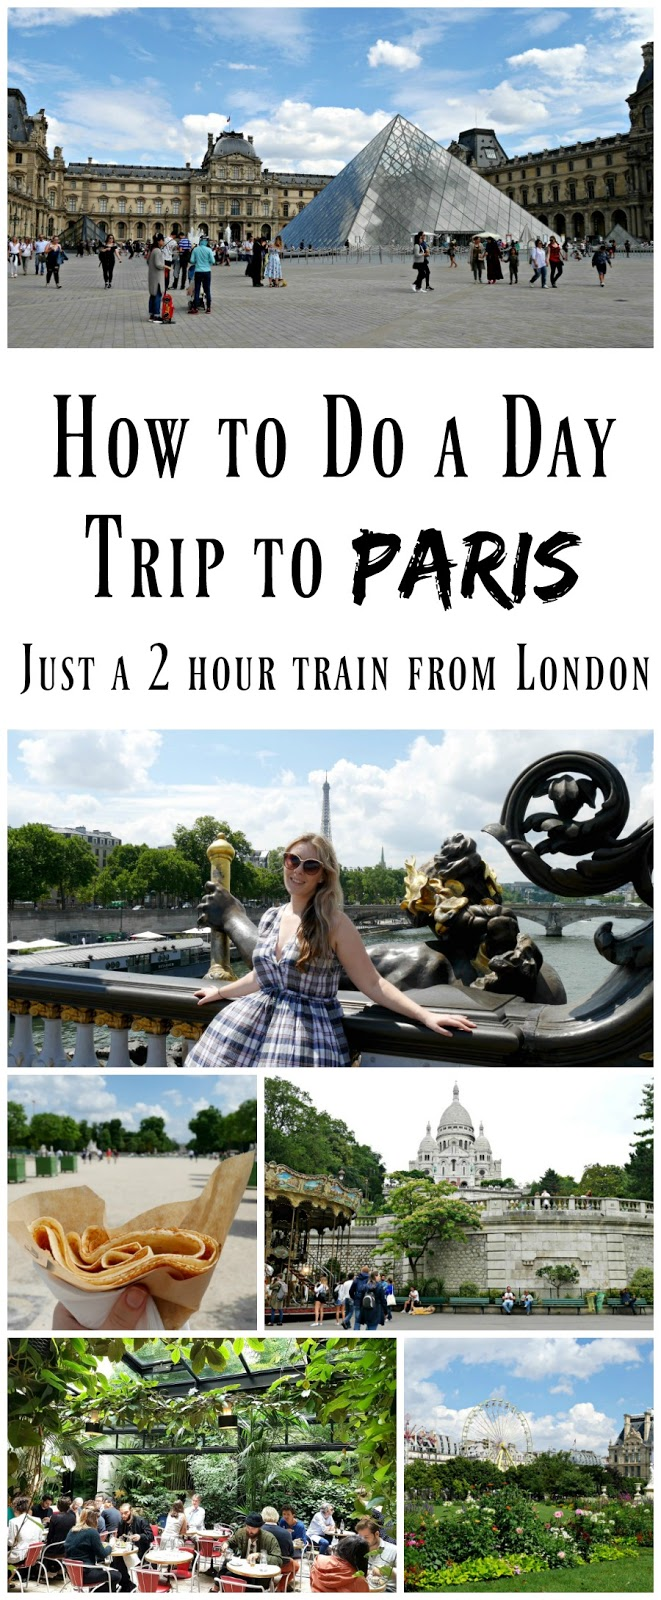 PIN FOR LATER: How to do a day trip to Paris in France, from London England! It's really easy to get the Eurostar from St Pancras and two hours later be eating croissants in Montmartre!